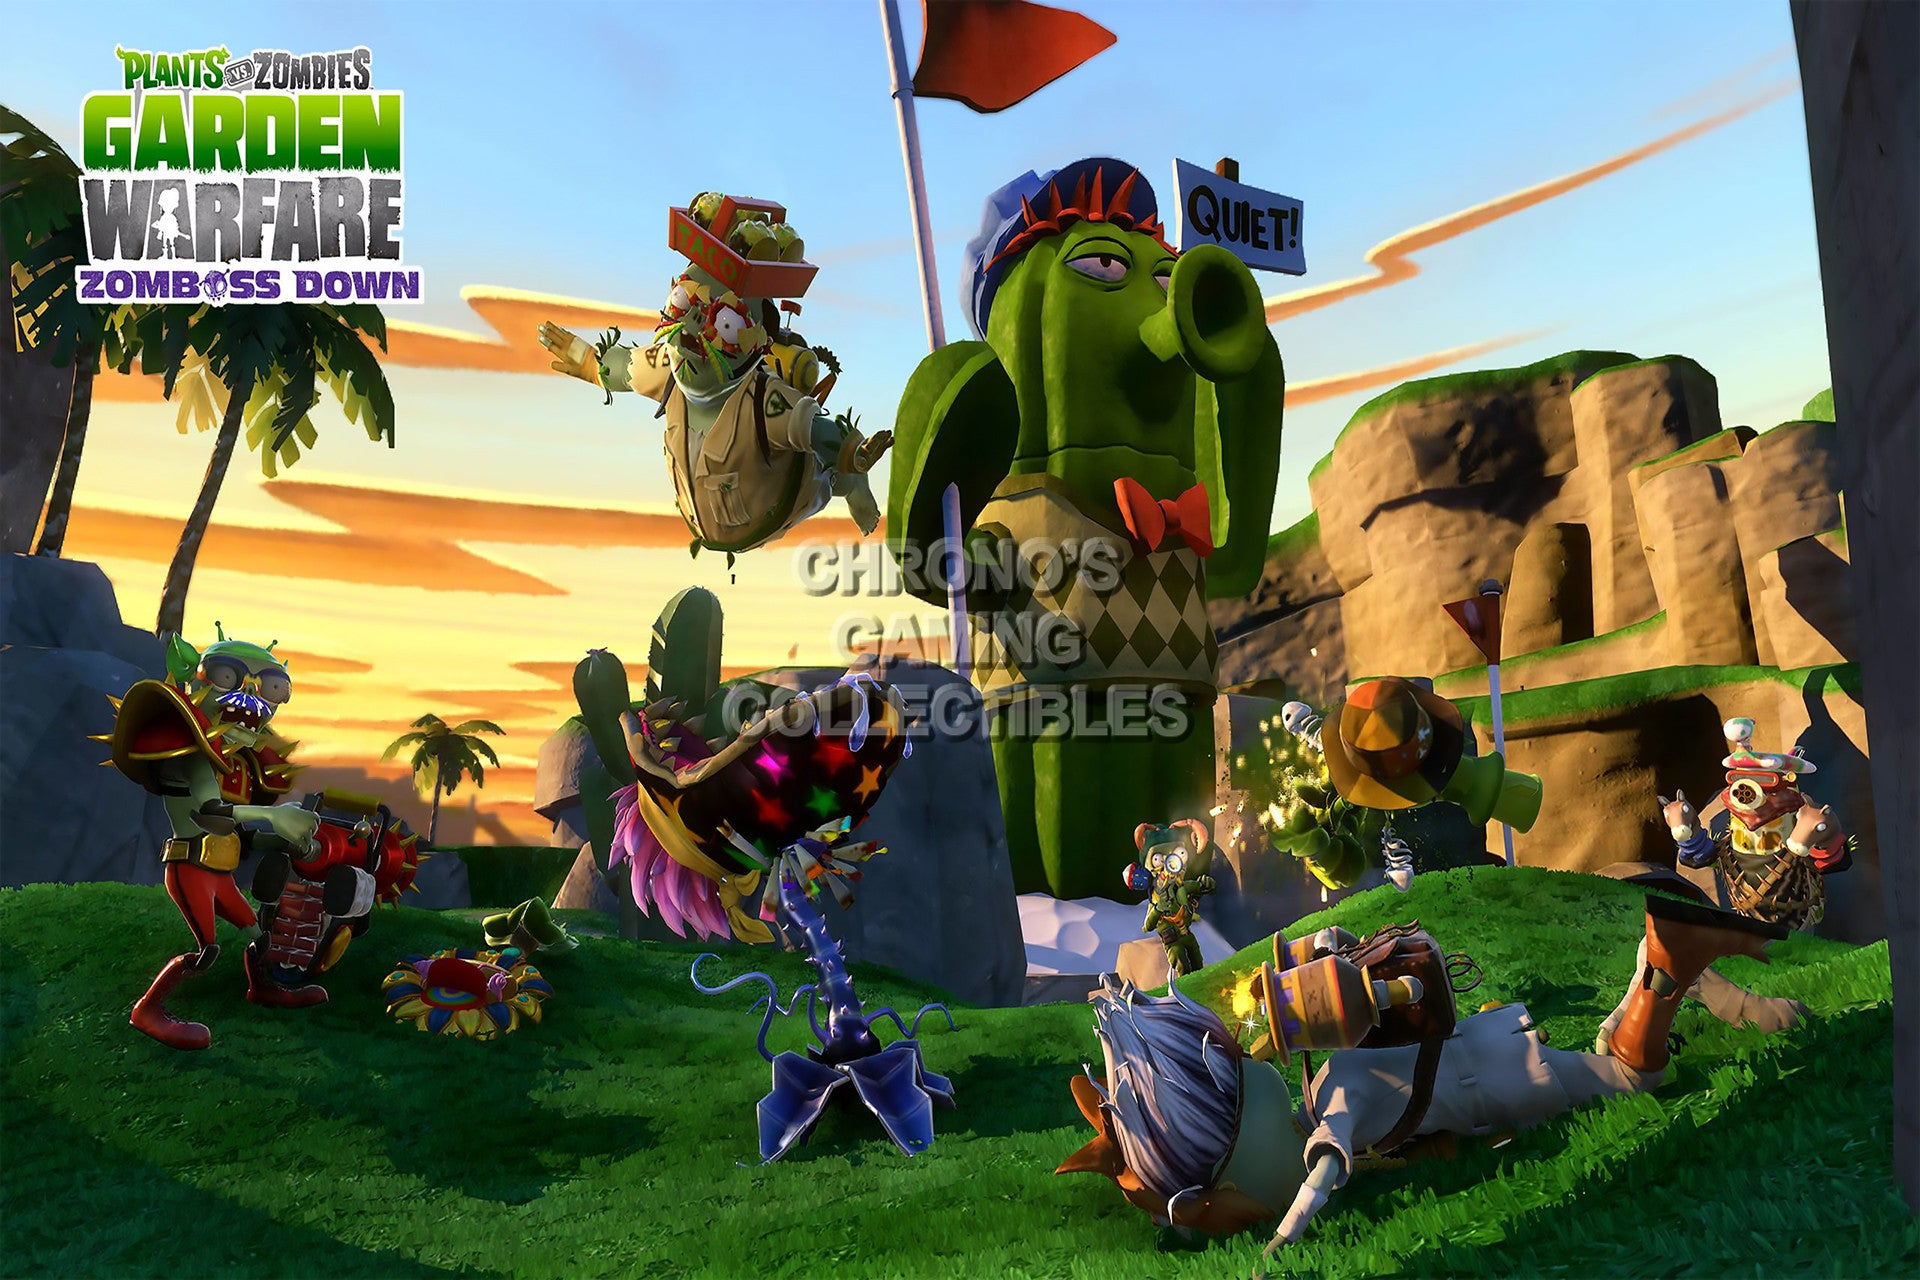 cgc huge poster plant vs zombies garden warfare ps3 ps4 xbox 360 one pvz004 - Plants Vs Zombies Garden Warfare Xbox 360